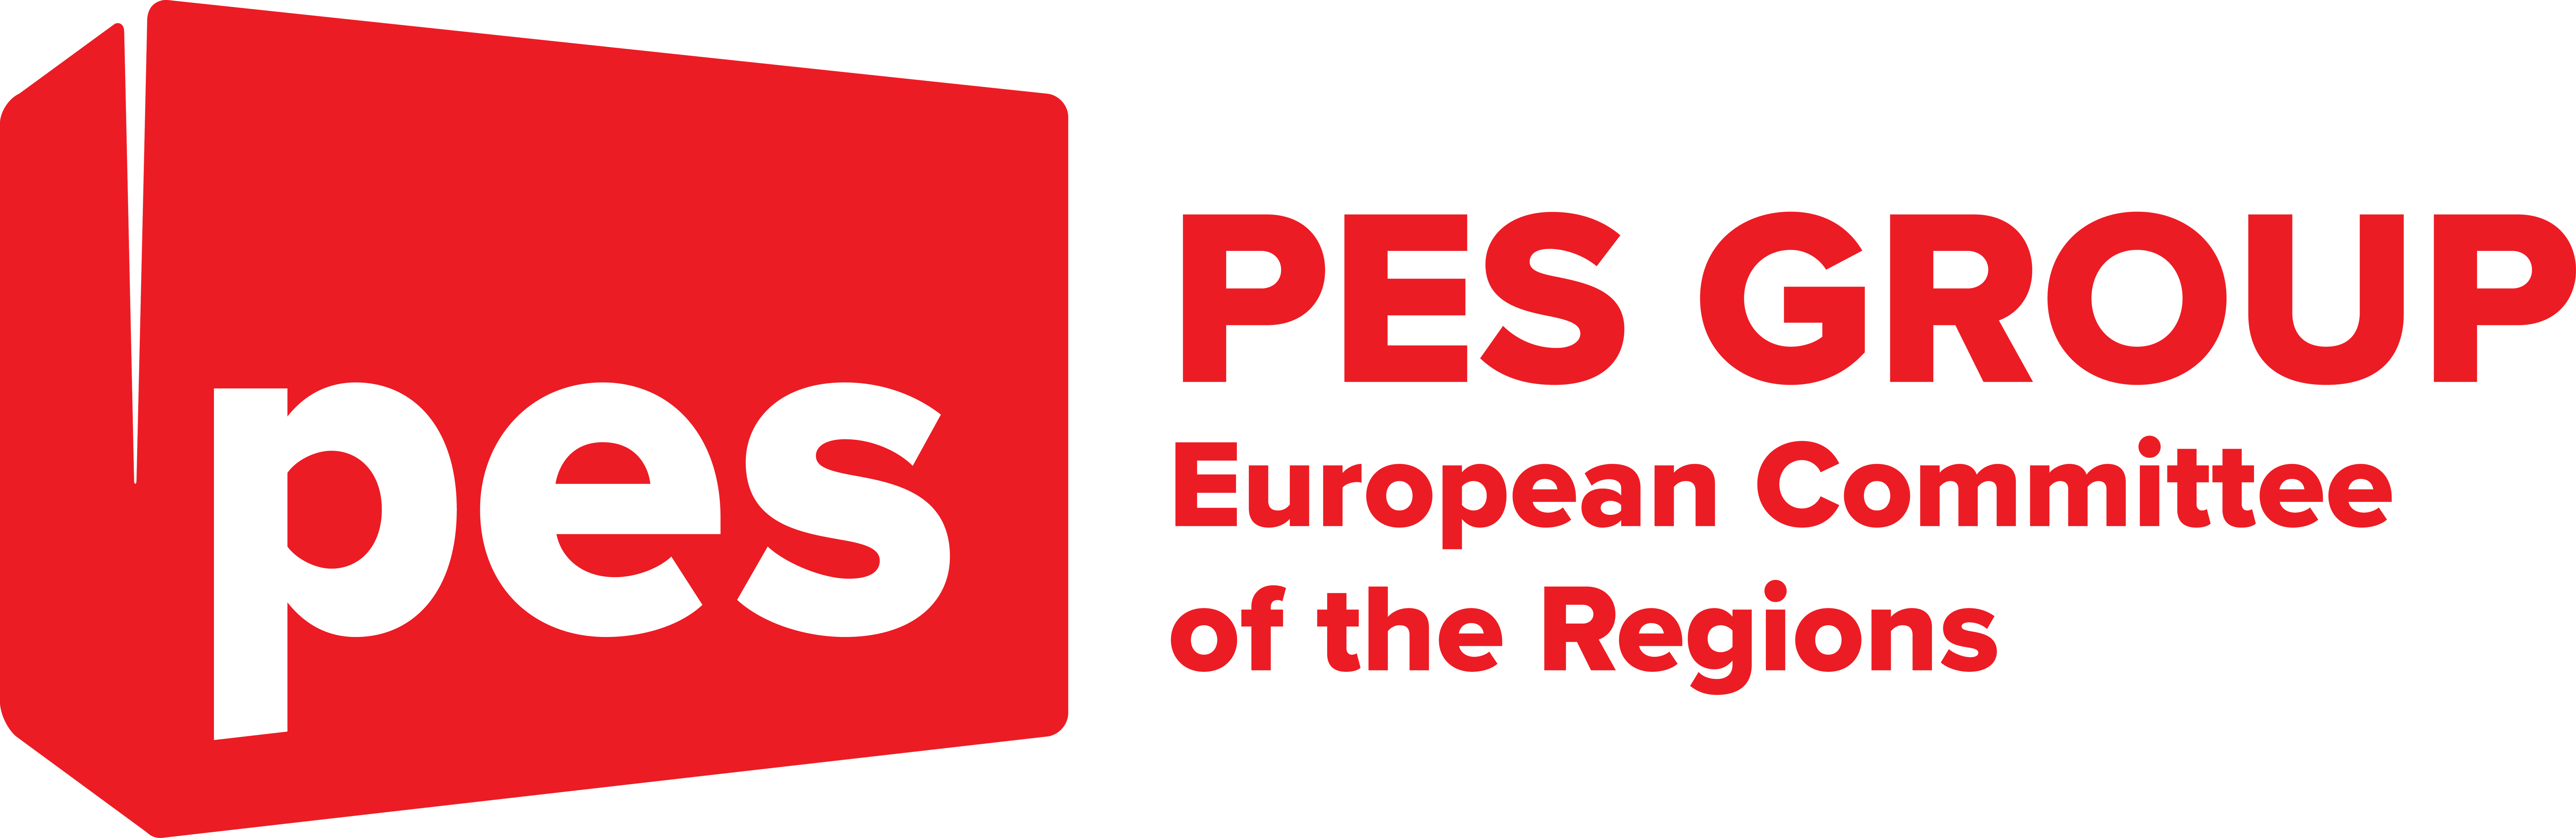 Logo of the Socialists and Democrats group